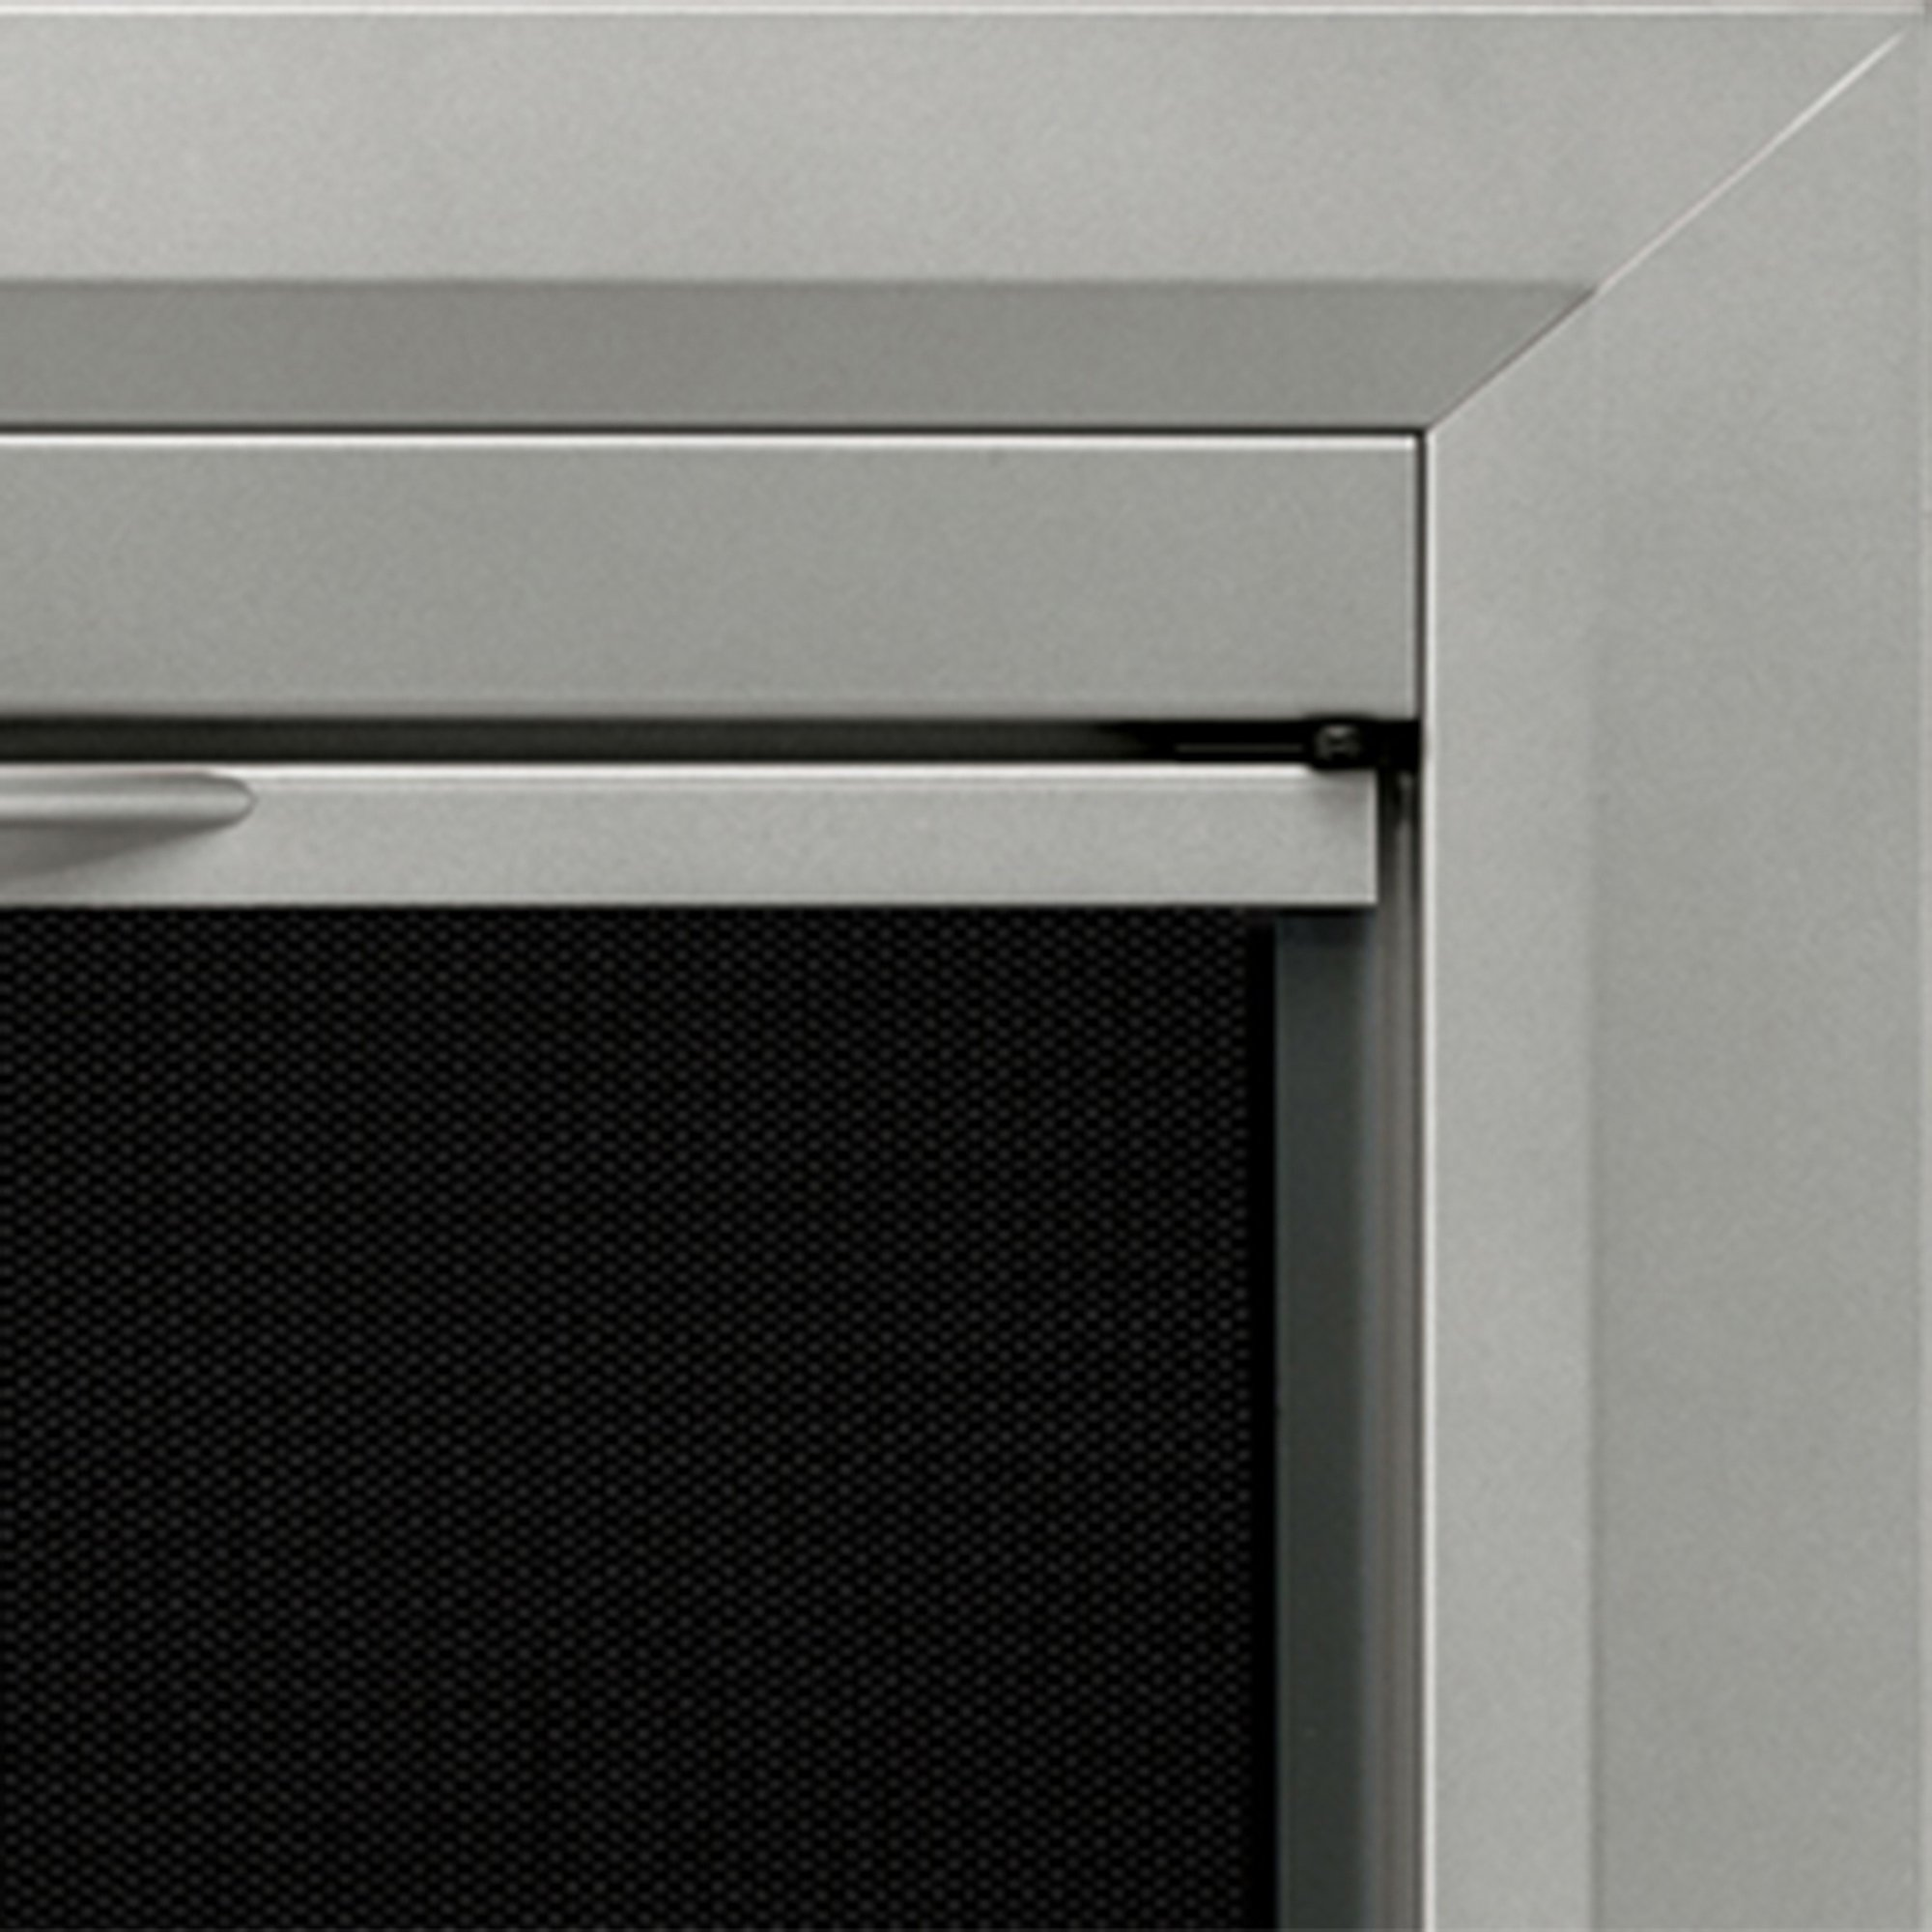 Pleasant Hearth CB-3300 Colby Fireplace Glass Door, Sunlight Nickel, Small by Pleasant Hearth